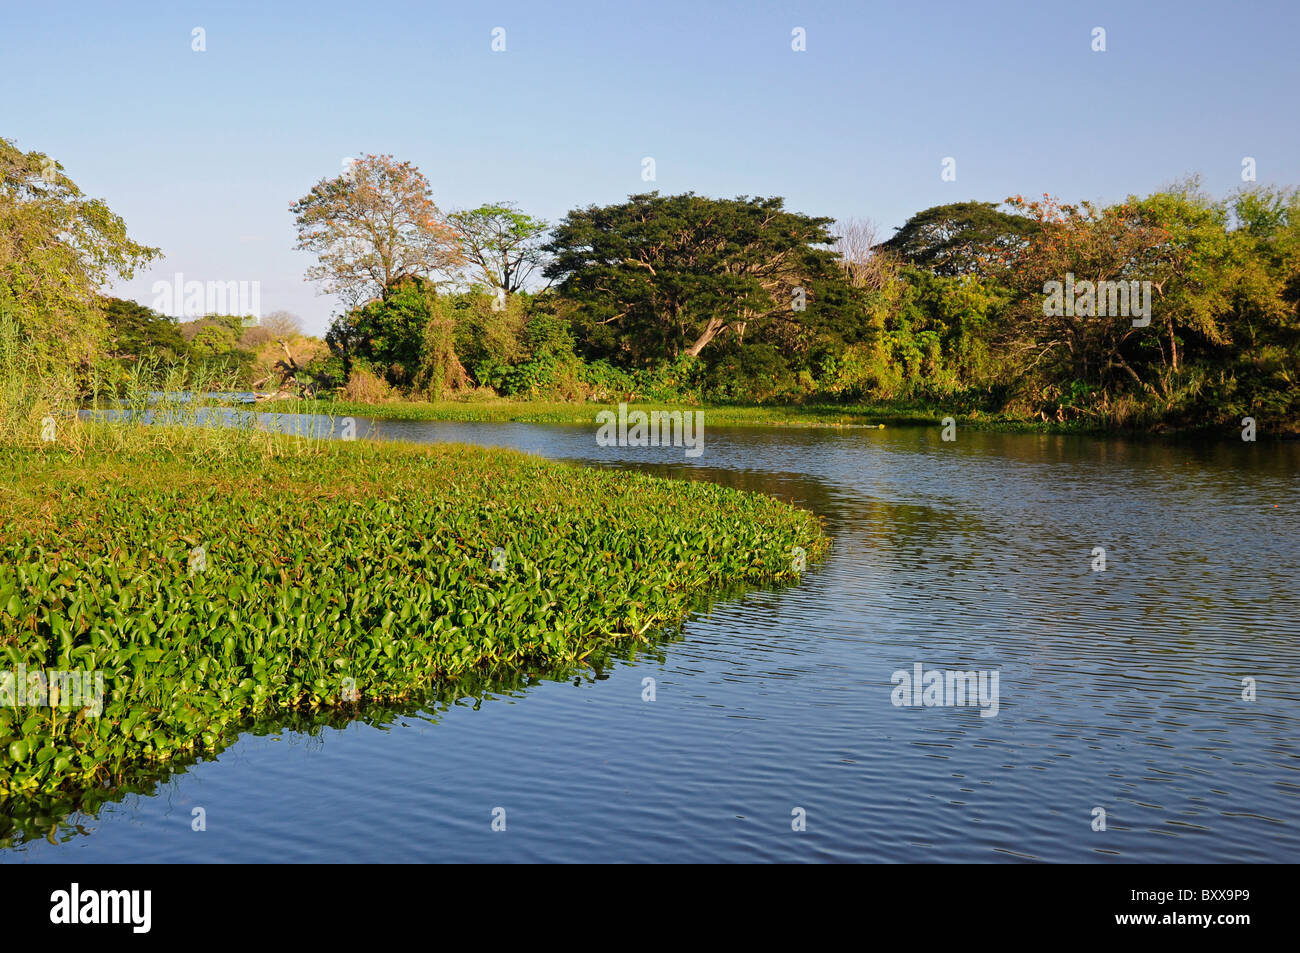 Floating Water Hyacinth Eichhornia Crassipes in Lake Nicaragua, in the bay of Granada, Nicaragua, Central America - Stock Image